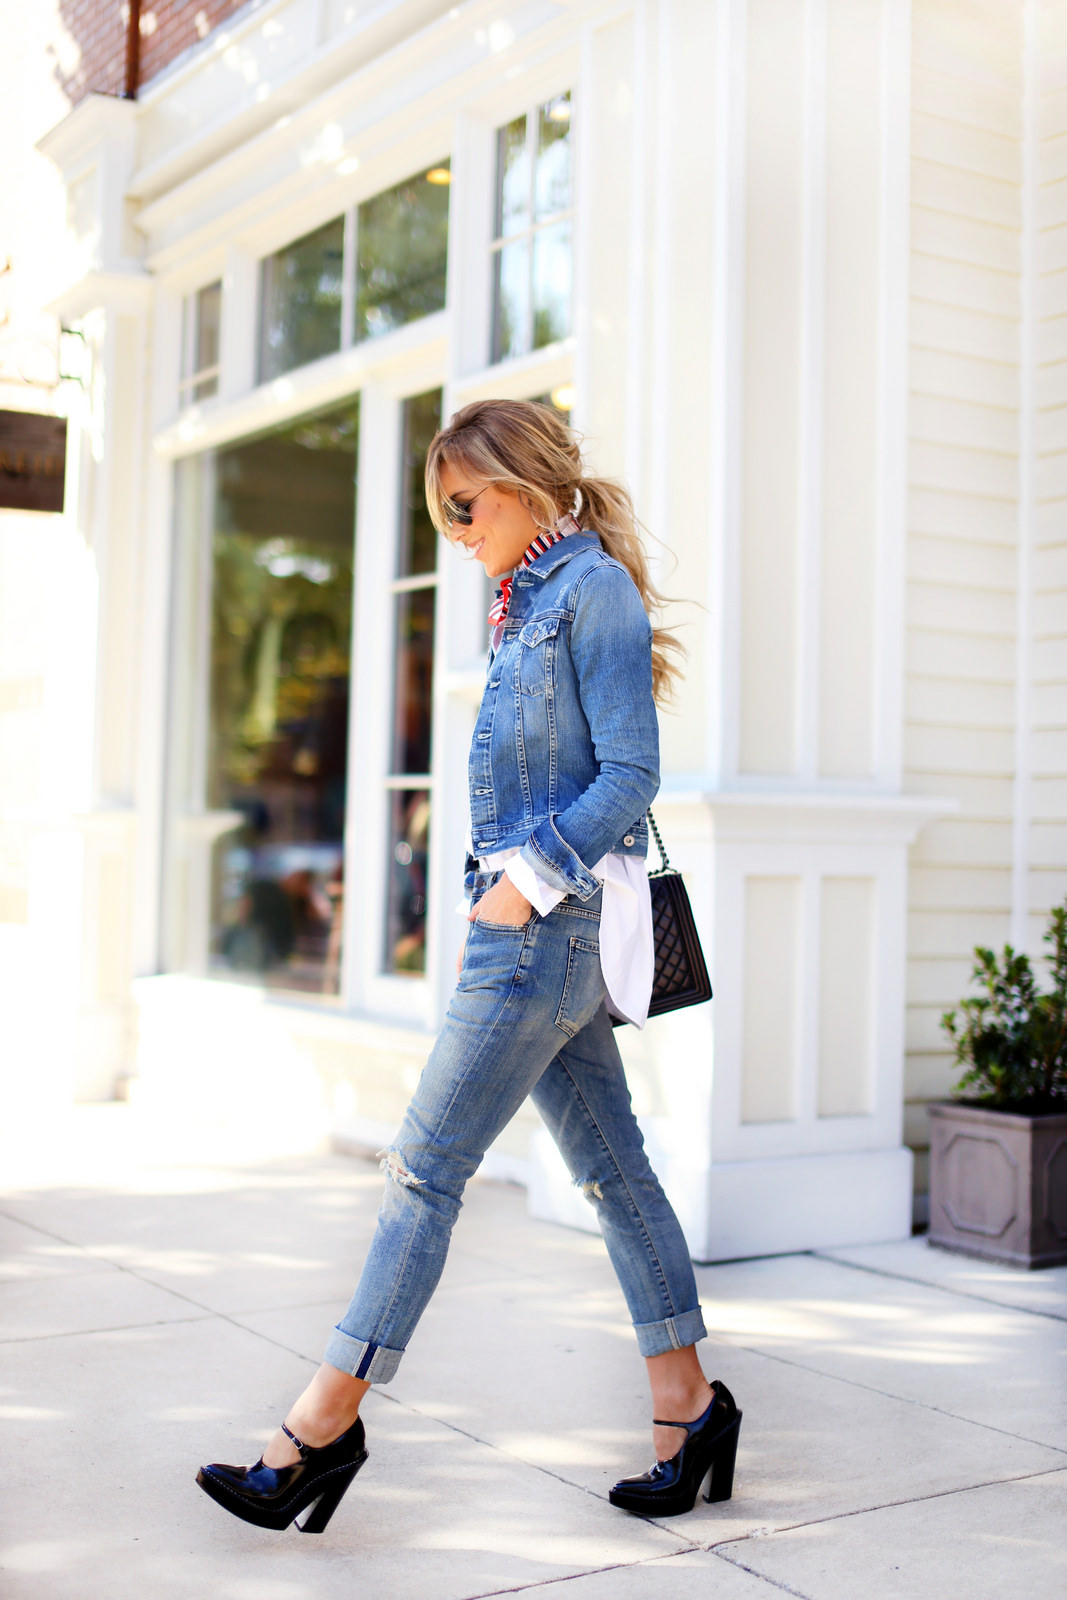 Mary Seng is wearing a denim jacket from AG Jeans, jeans from Citizens of Humanity, shoes from Alexander Wang, vintage scarf and the bag is from Chanel